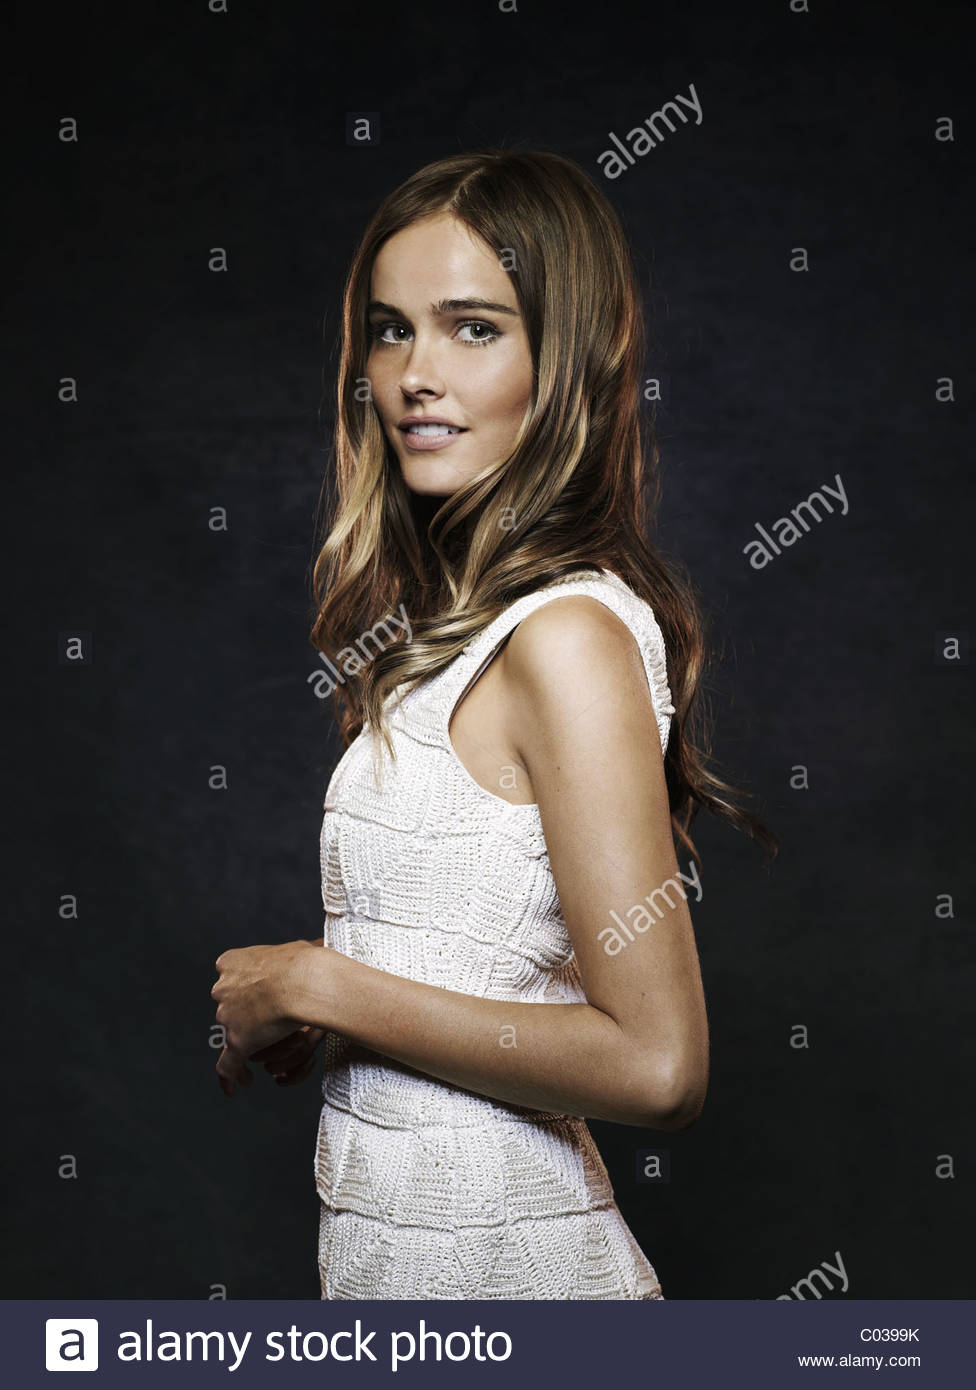 isabel lucas transformers alice